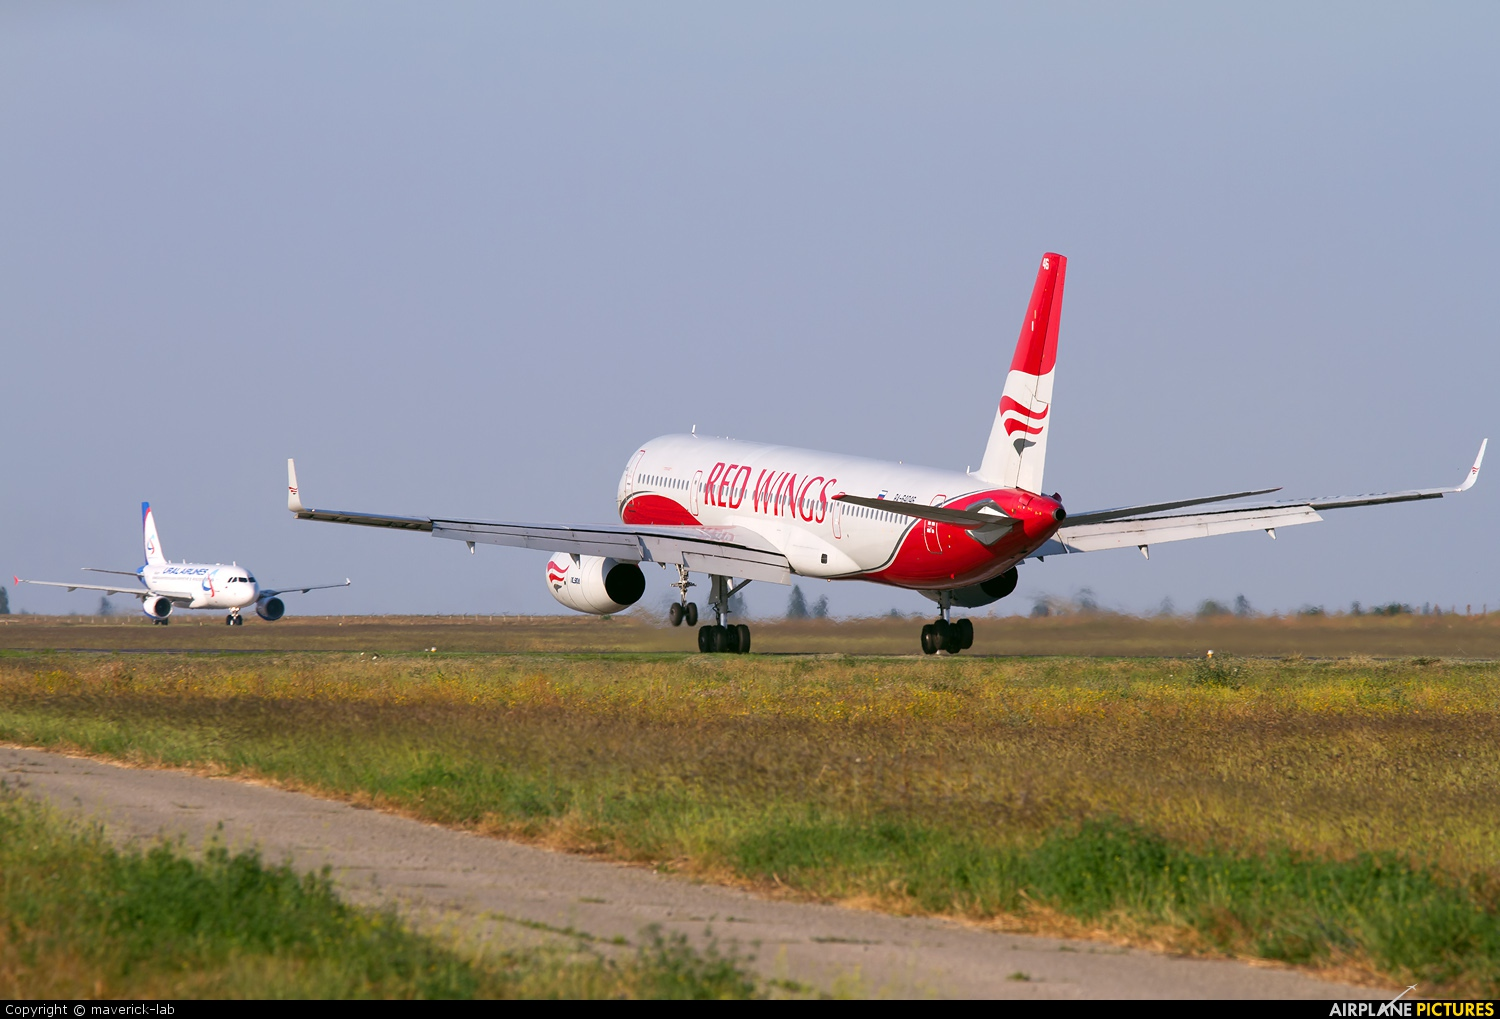 Red Wings RA-64046 aircraft at Simferepol Intl